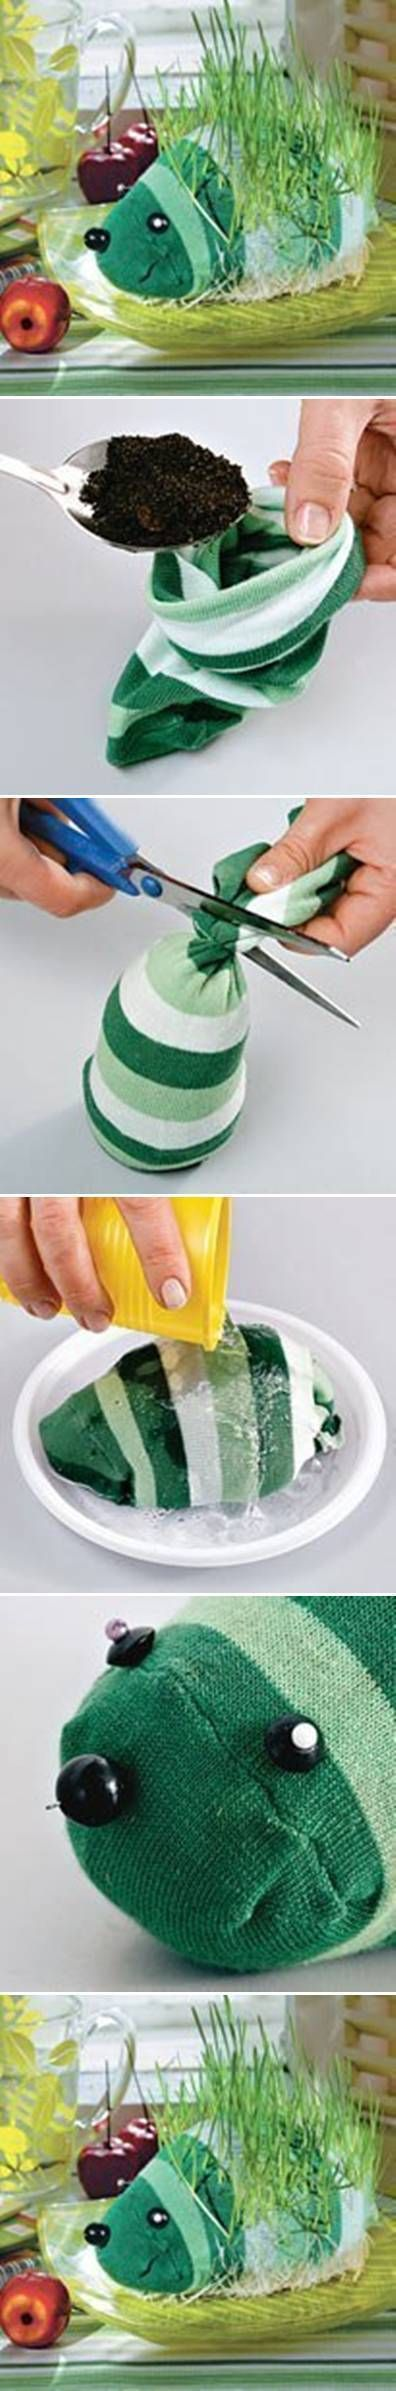 DIY Sock Growing Grass Hedgehog- cute gift idea for the 3 year olds in my life. :)